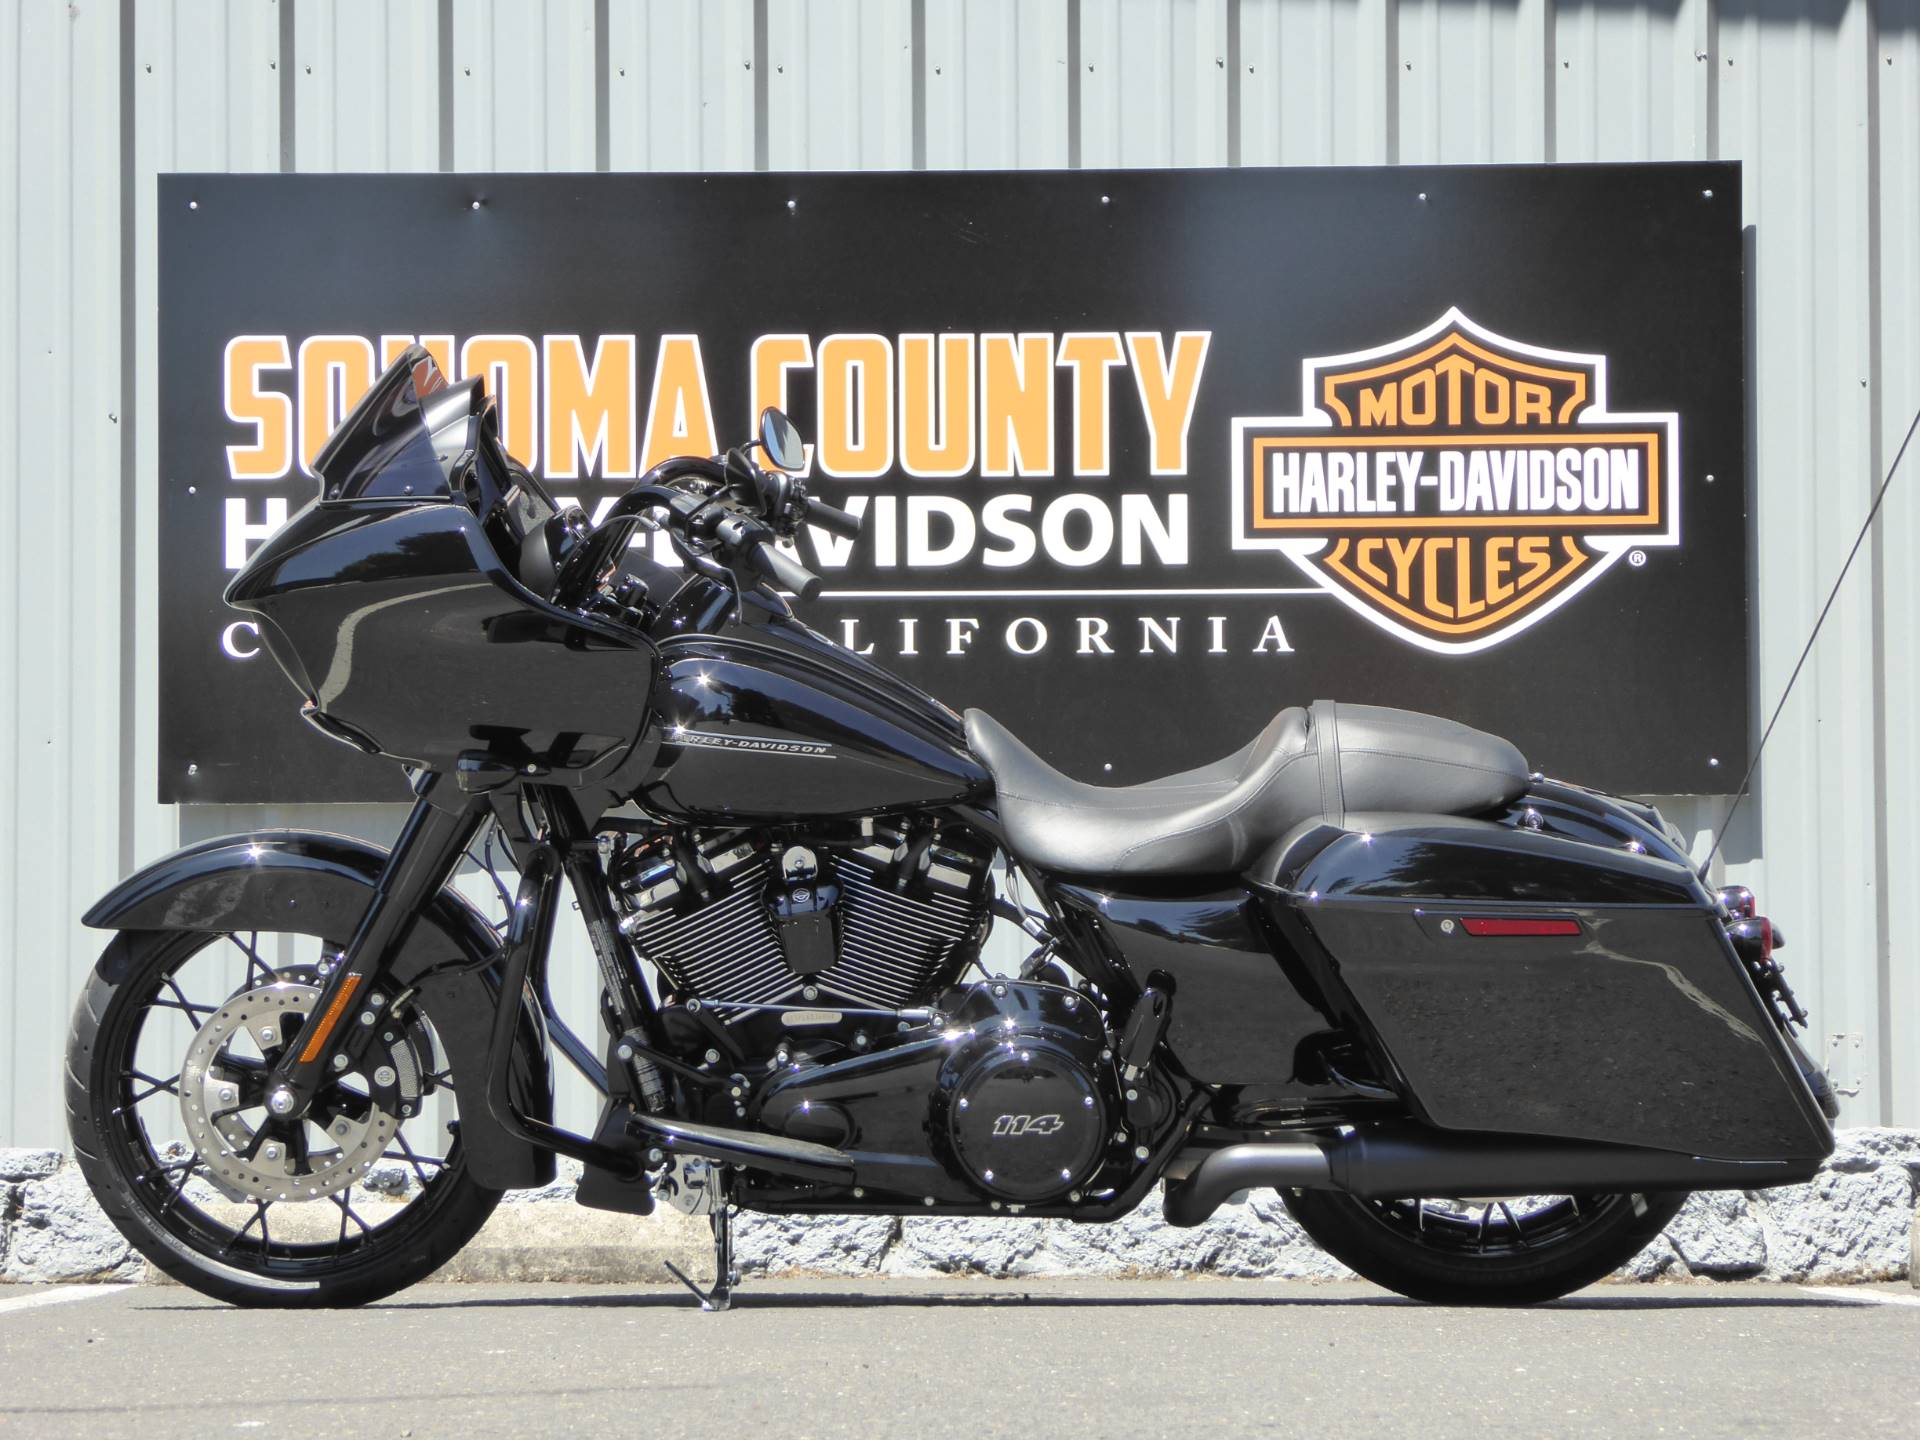 2020 Harley-Davidson Road Glide Special in Cotati, California - Photo 6